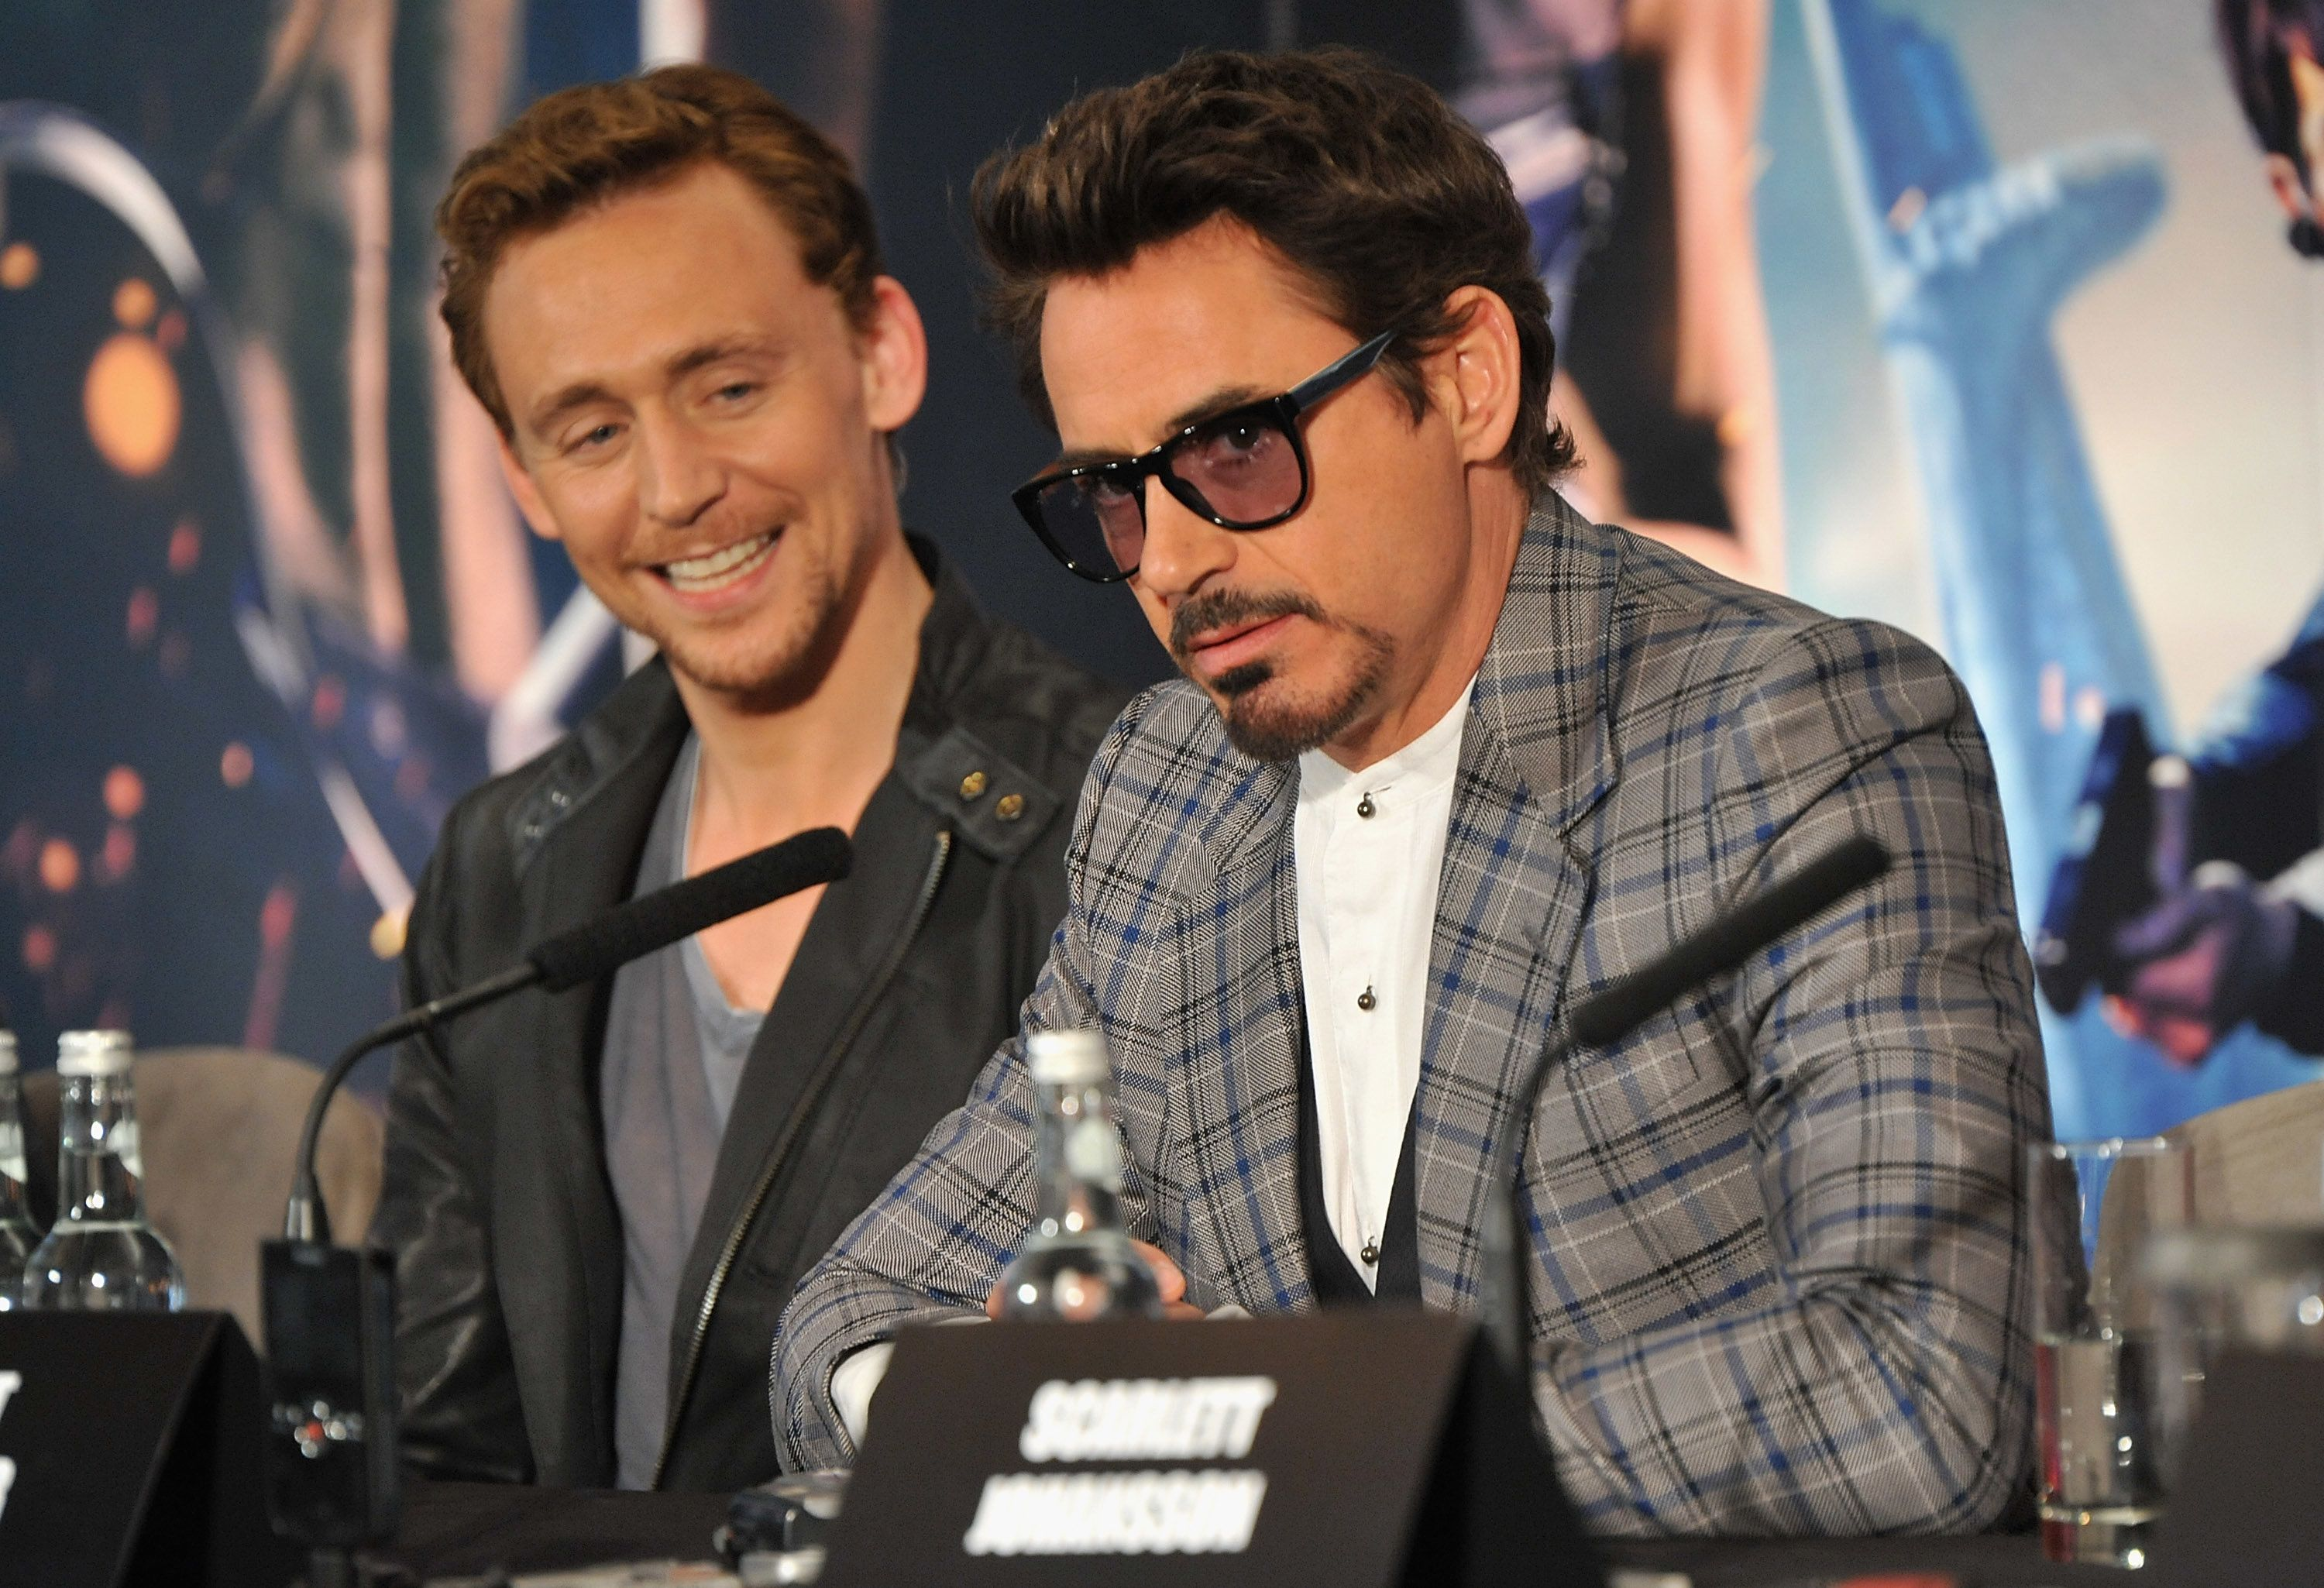 LONDON, ENGLAND - APRIL 19:  (EXCLUSIVE COVERAGE)   Actors Tom Hiddleston and Robert Downey Jr attend Marvel Studios' 'Avengers Assemble' Press Conference at Claridge's Hotel on April 19, 2012 in London, England.  (Photo by Jon Furniss/WireImage)